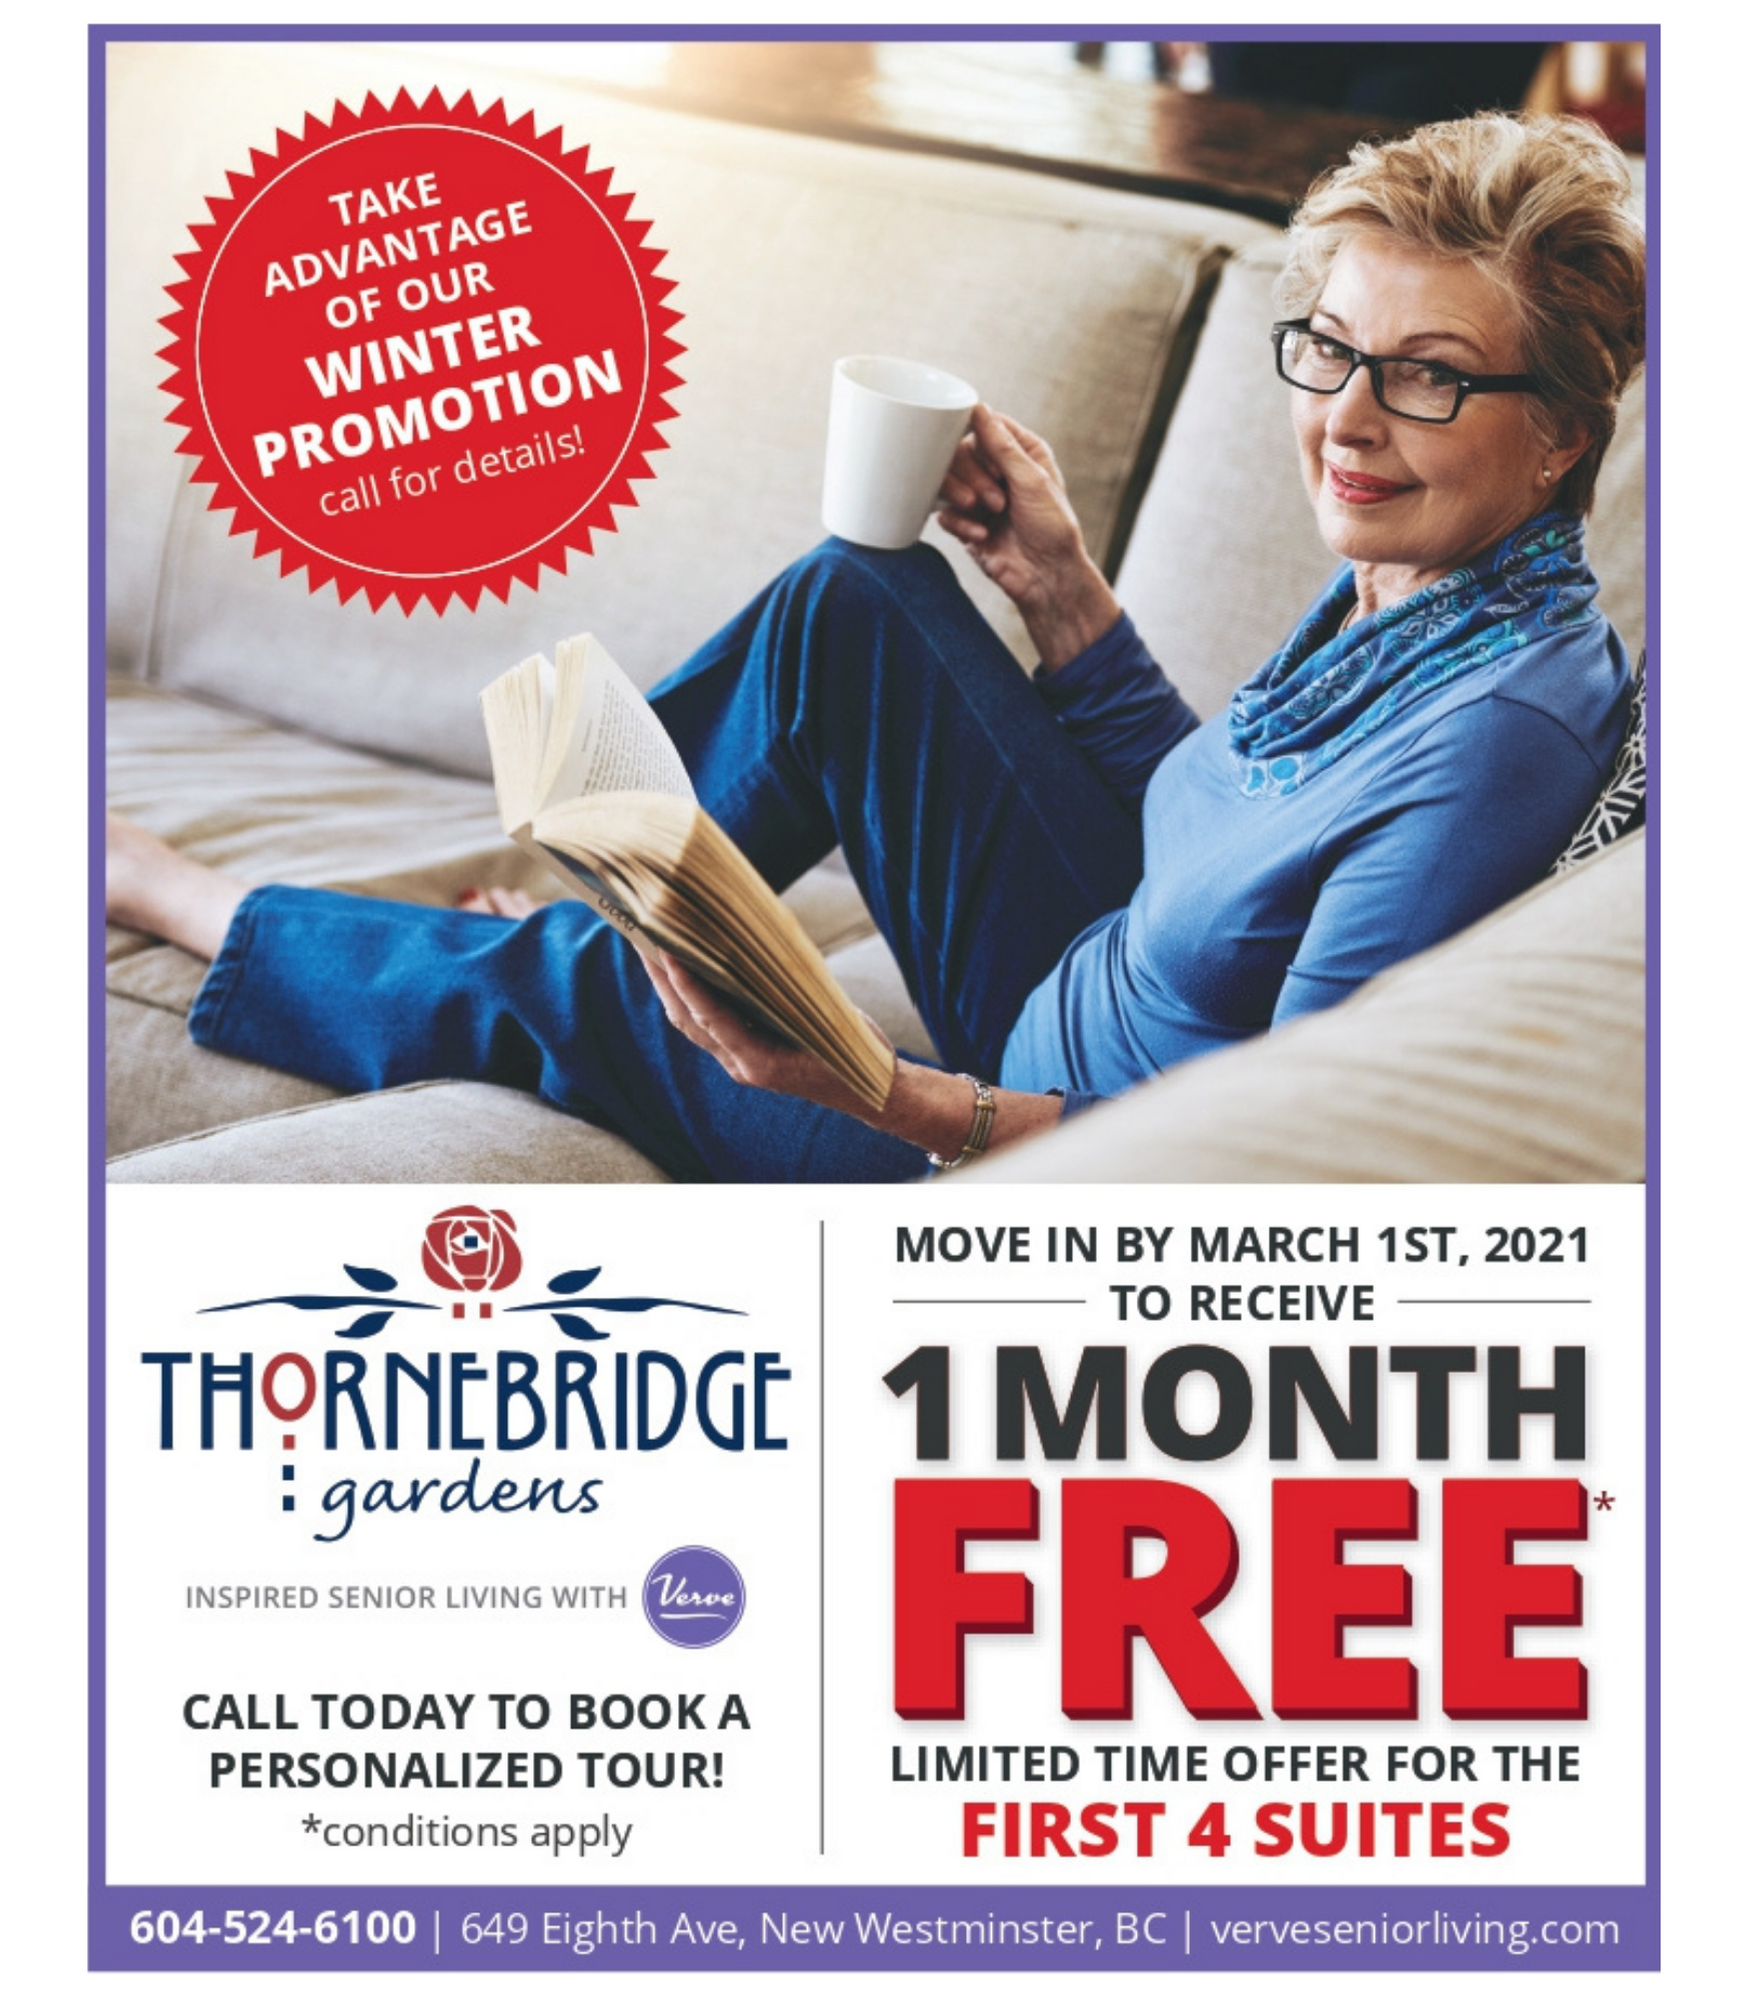 One Month Free at Thornebridge Gardens Retirement Residence | Limited Time Offer